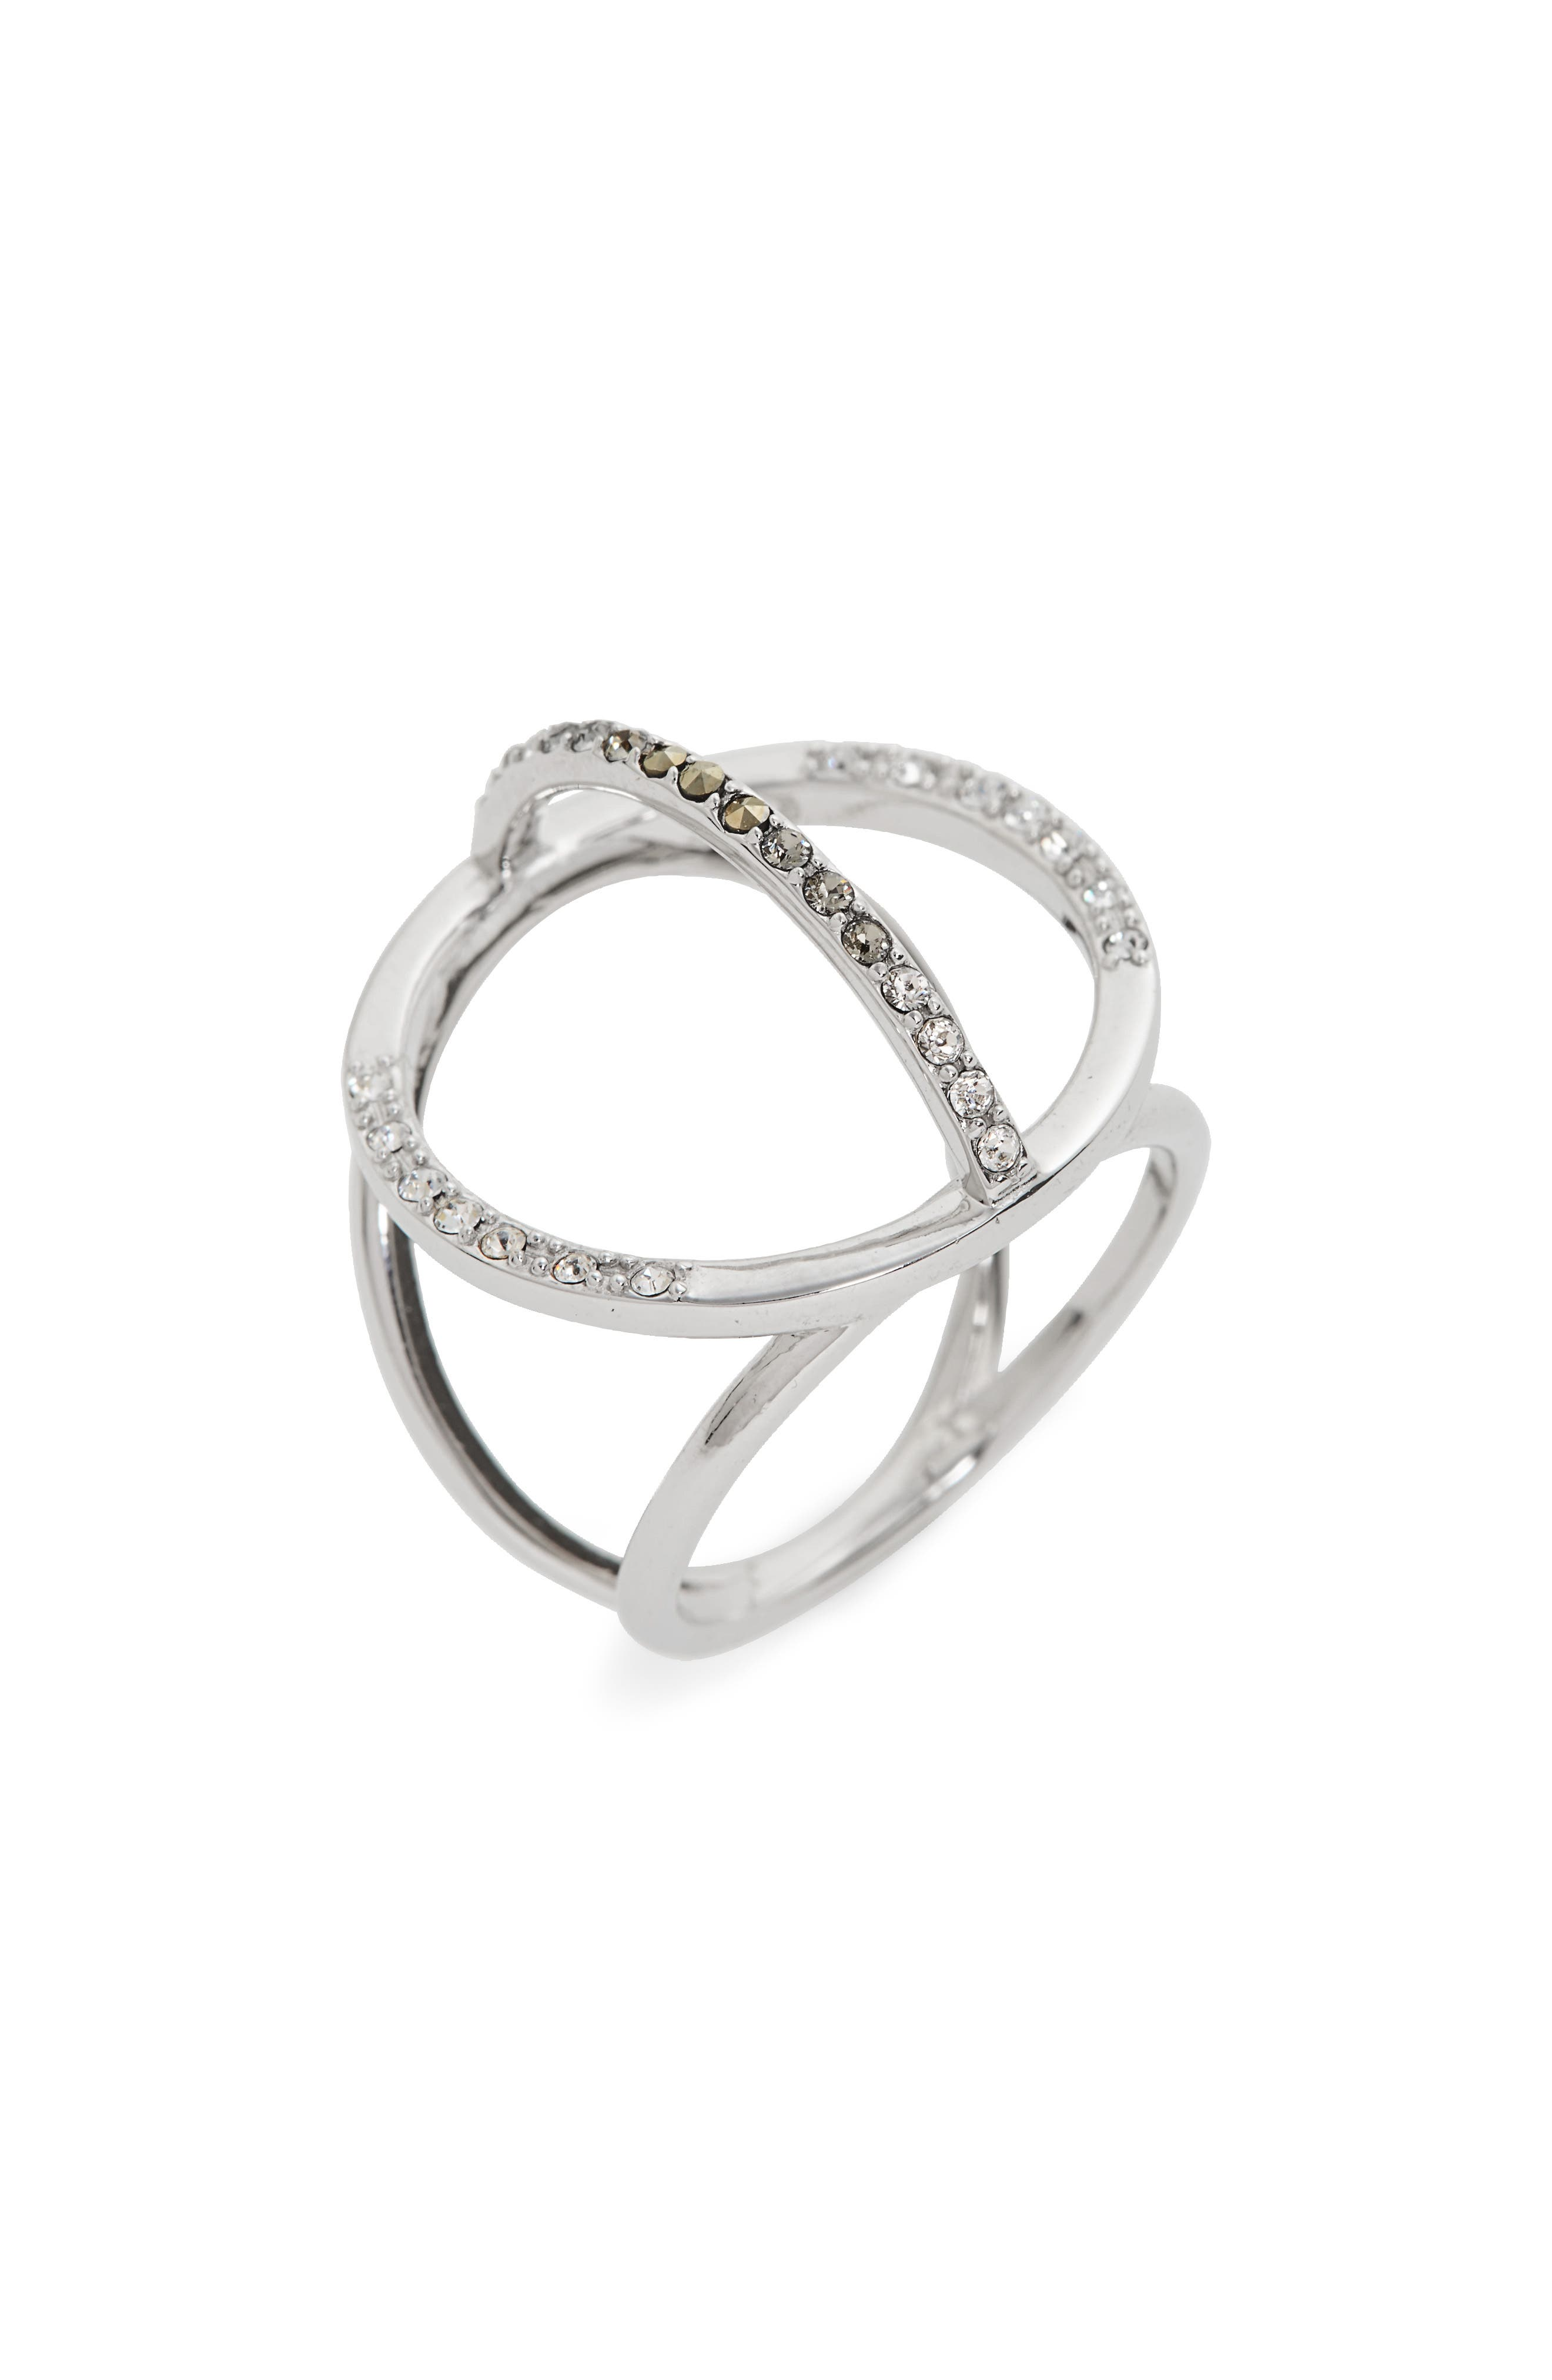 JUDITH JACK Silver Sparkle Circle Ring